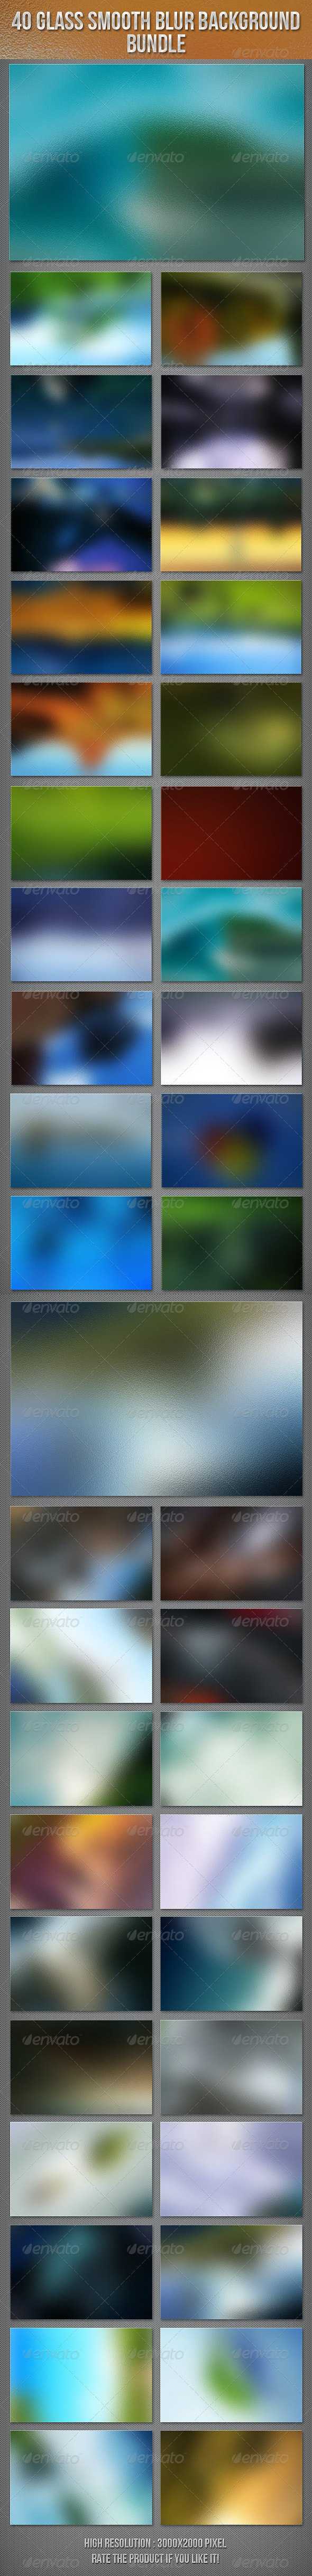 40 Glass Smooth Blur Background Bundle - Abstract Backgrounds